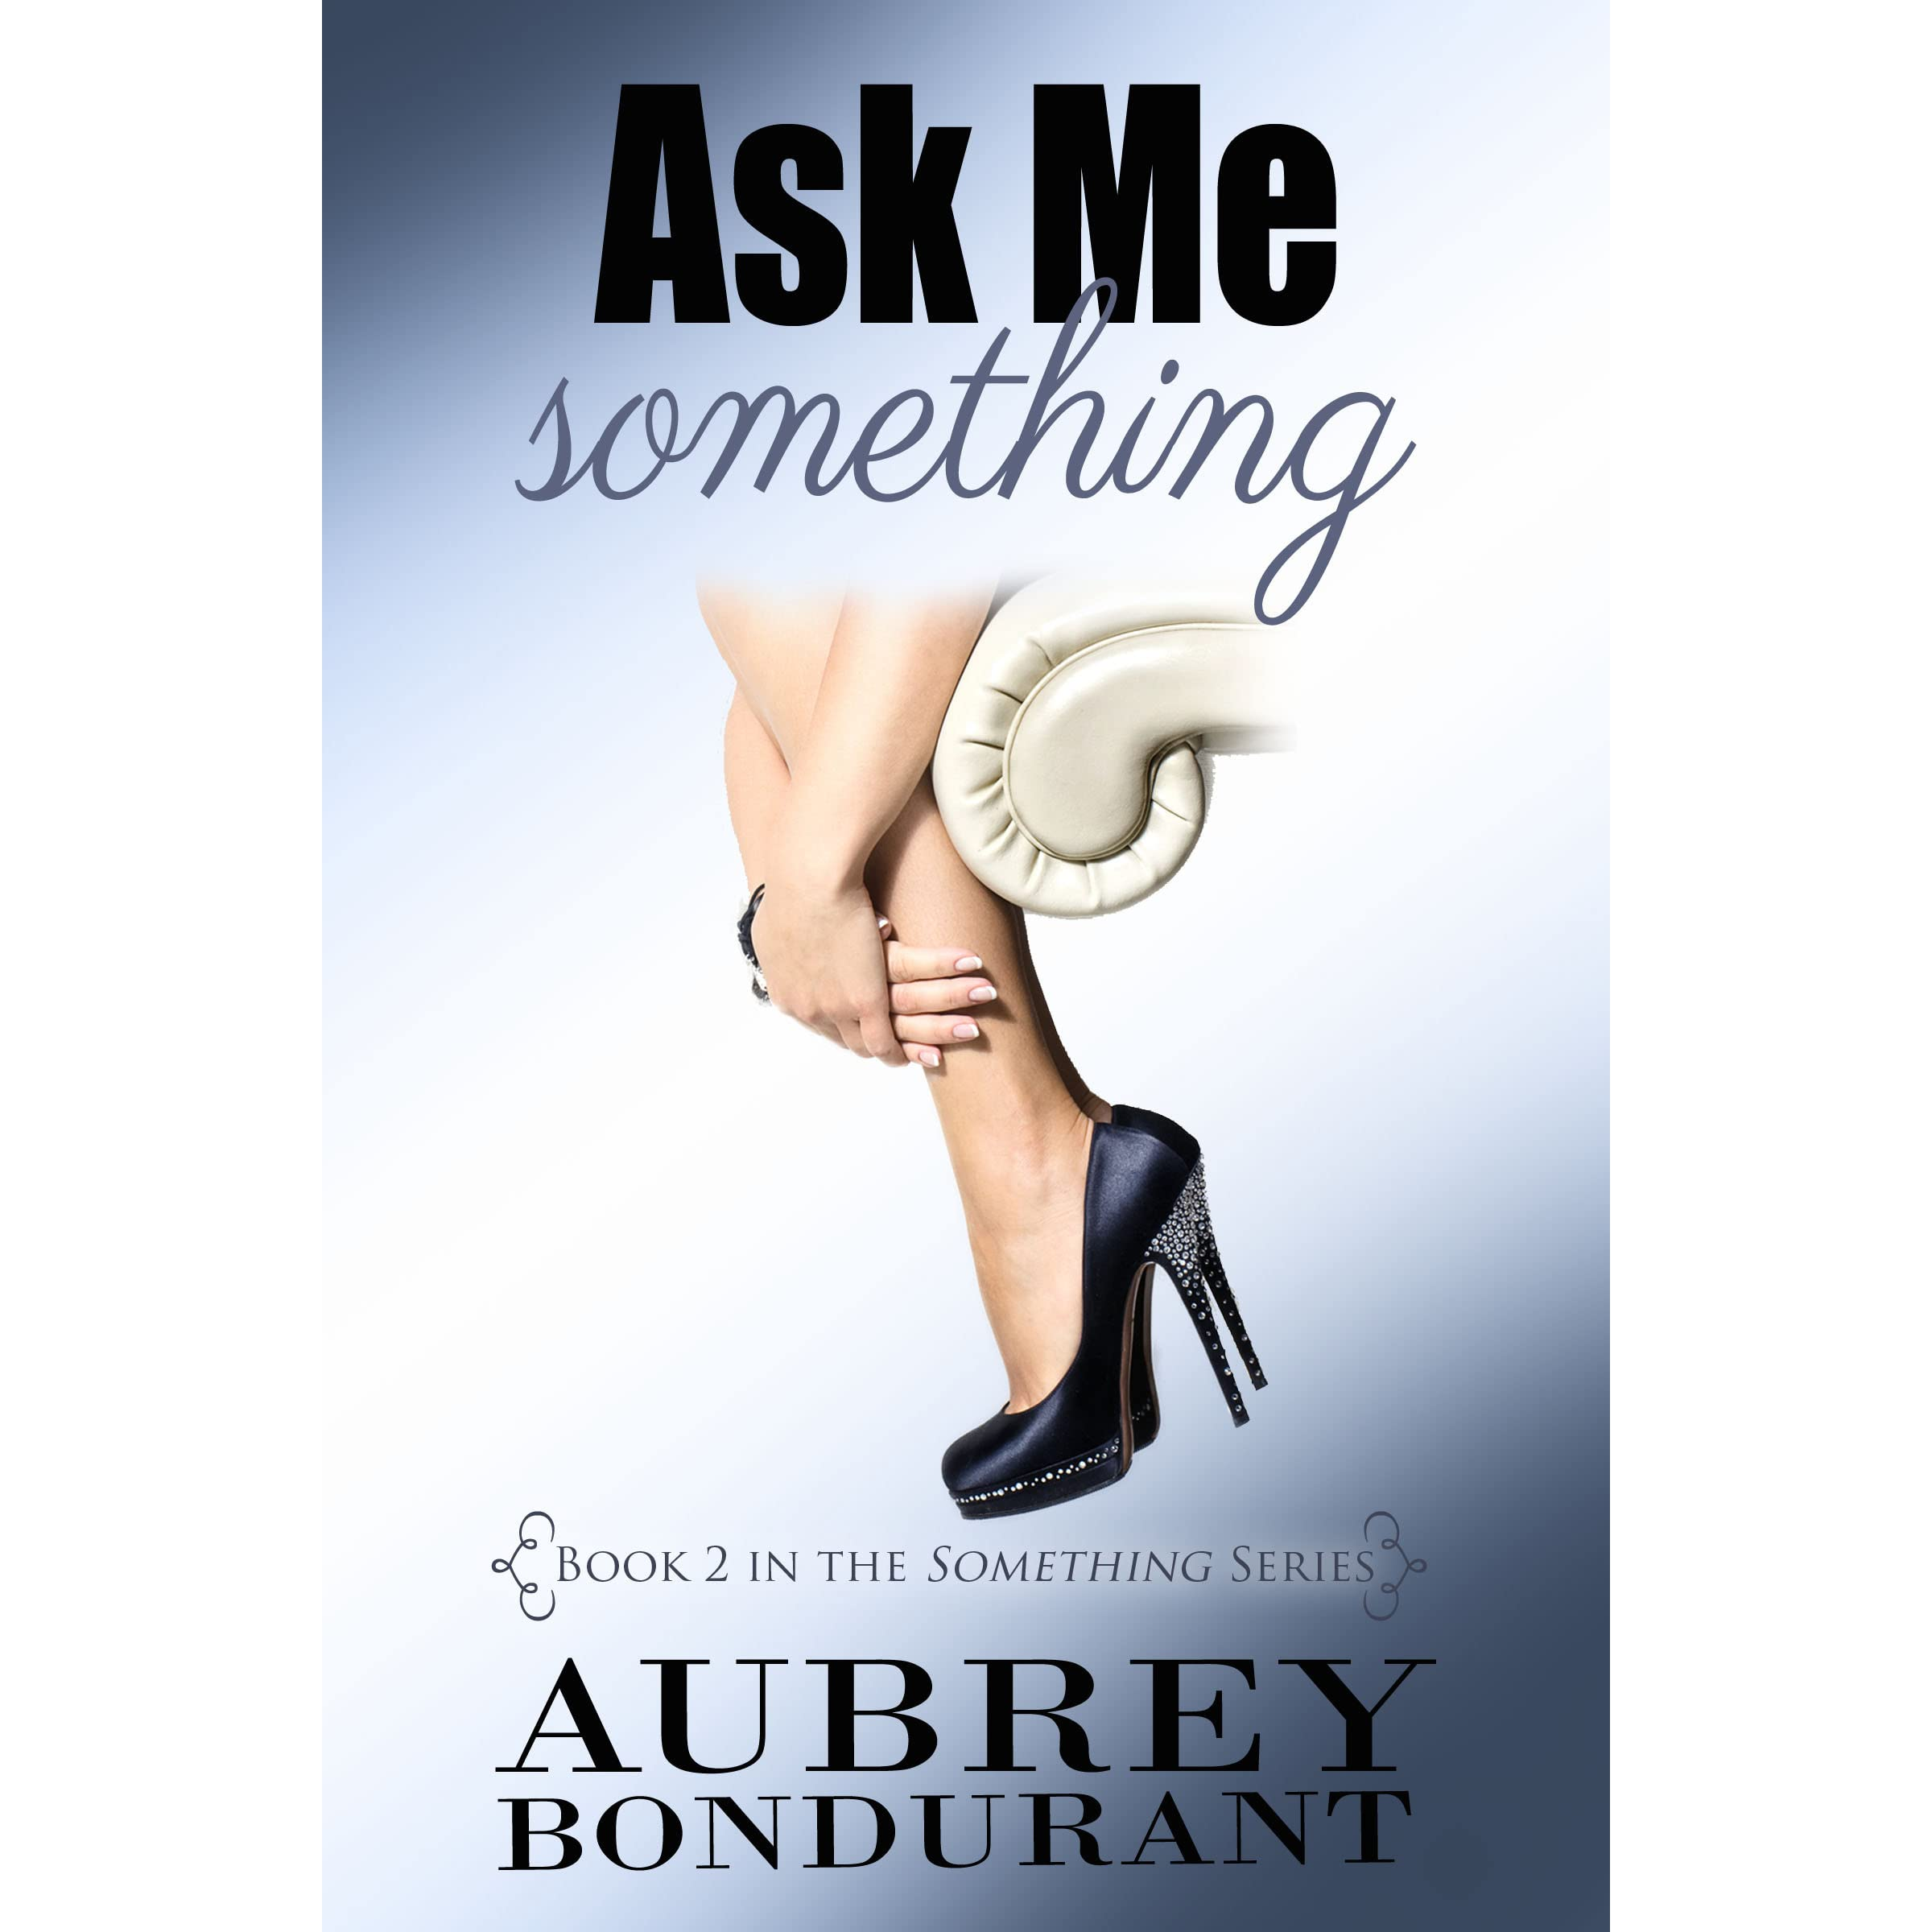 Love Aubrey Book Cover : Ask me something by aubrey bondurant